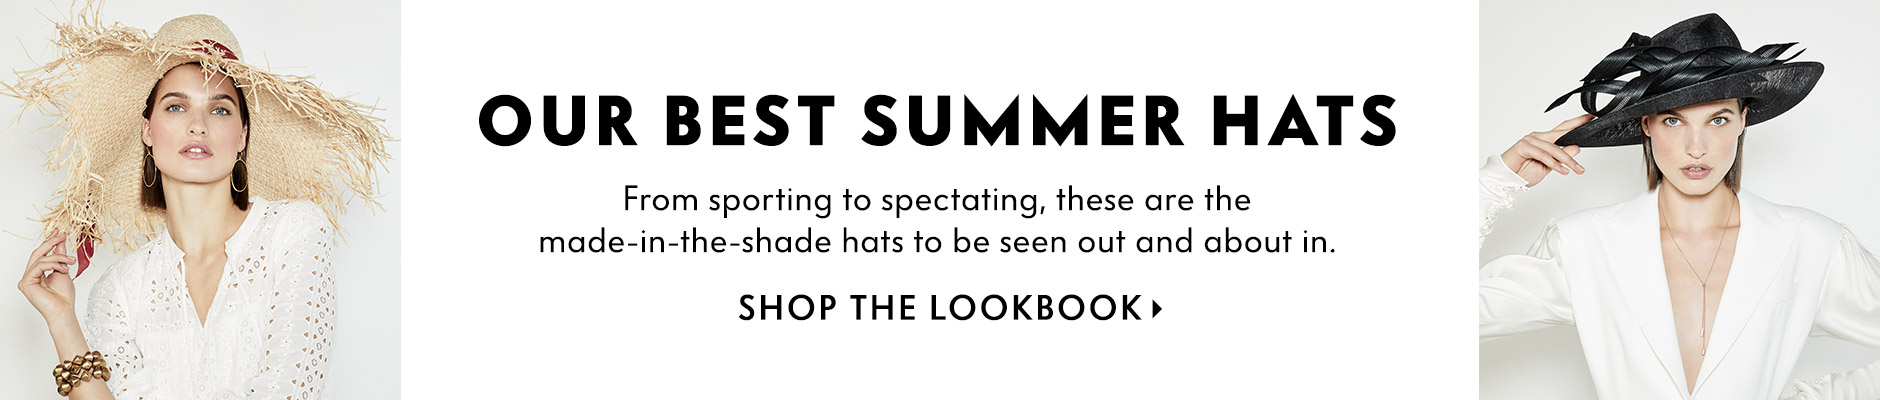 Summer Hat Lookbook